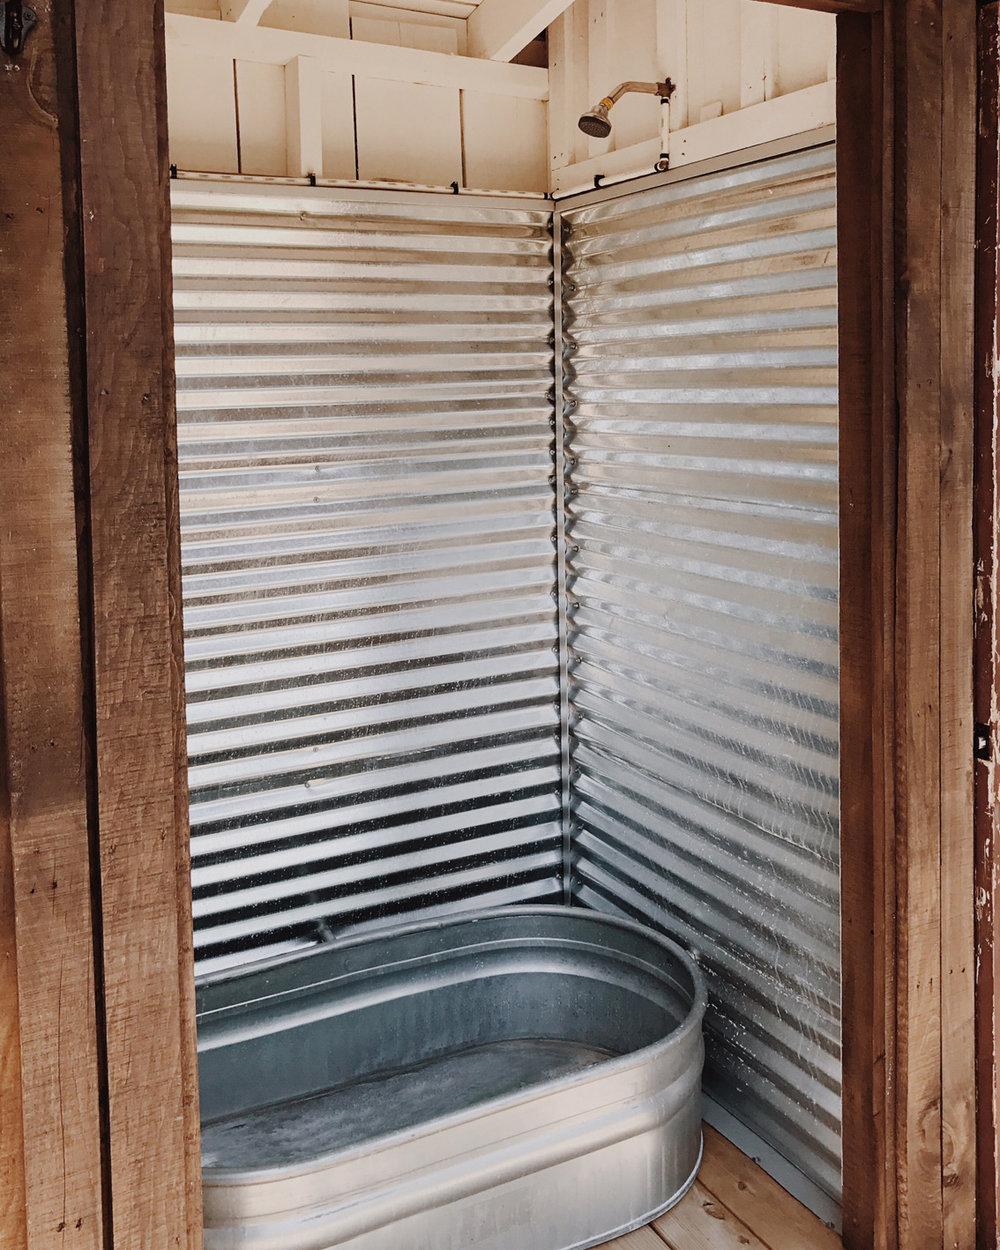 Simple iPhone photo of the cabin's shower/tub from when I visited to preview it.